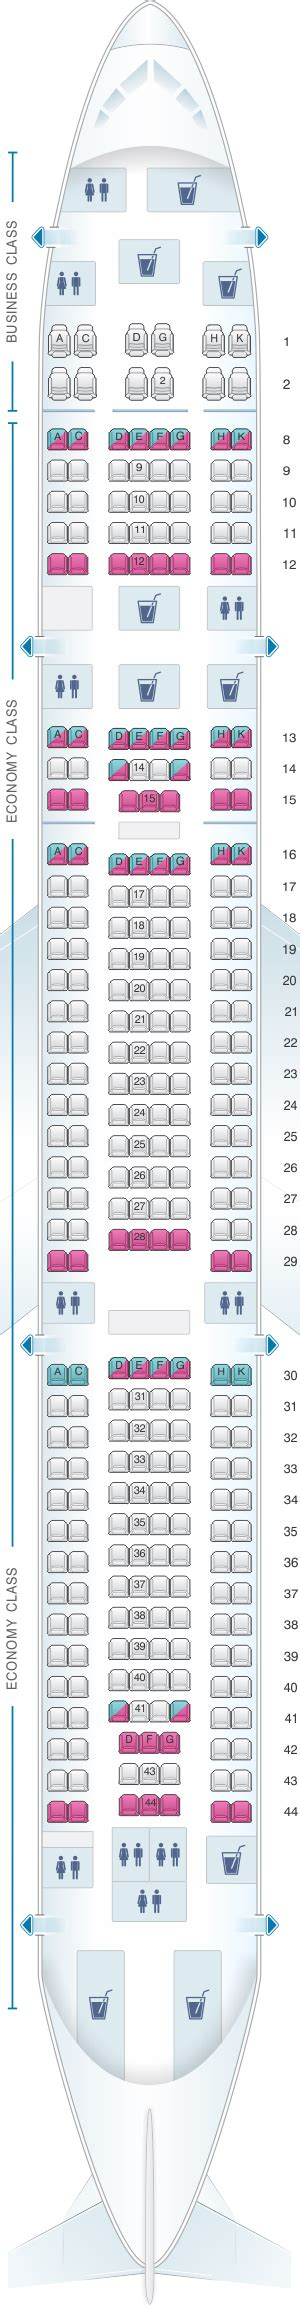 airbus a340 300 stoelindeling seat map hi fly airbus a340 300 tqm 300pax seatmaestro